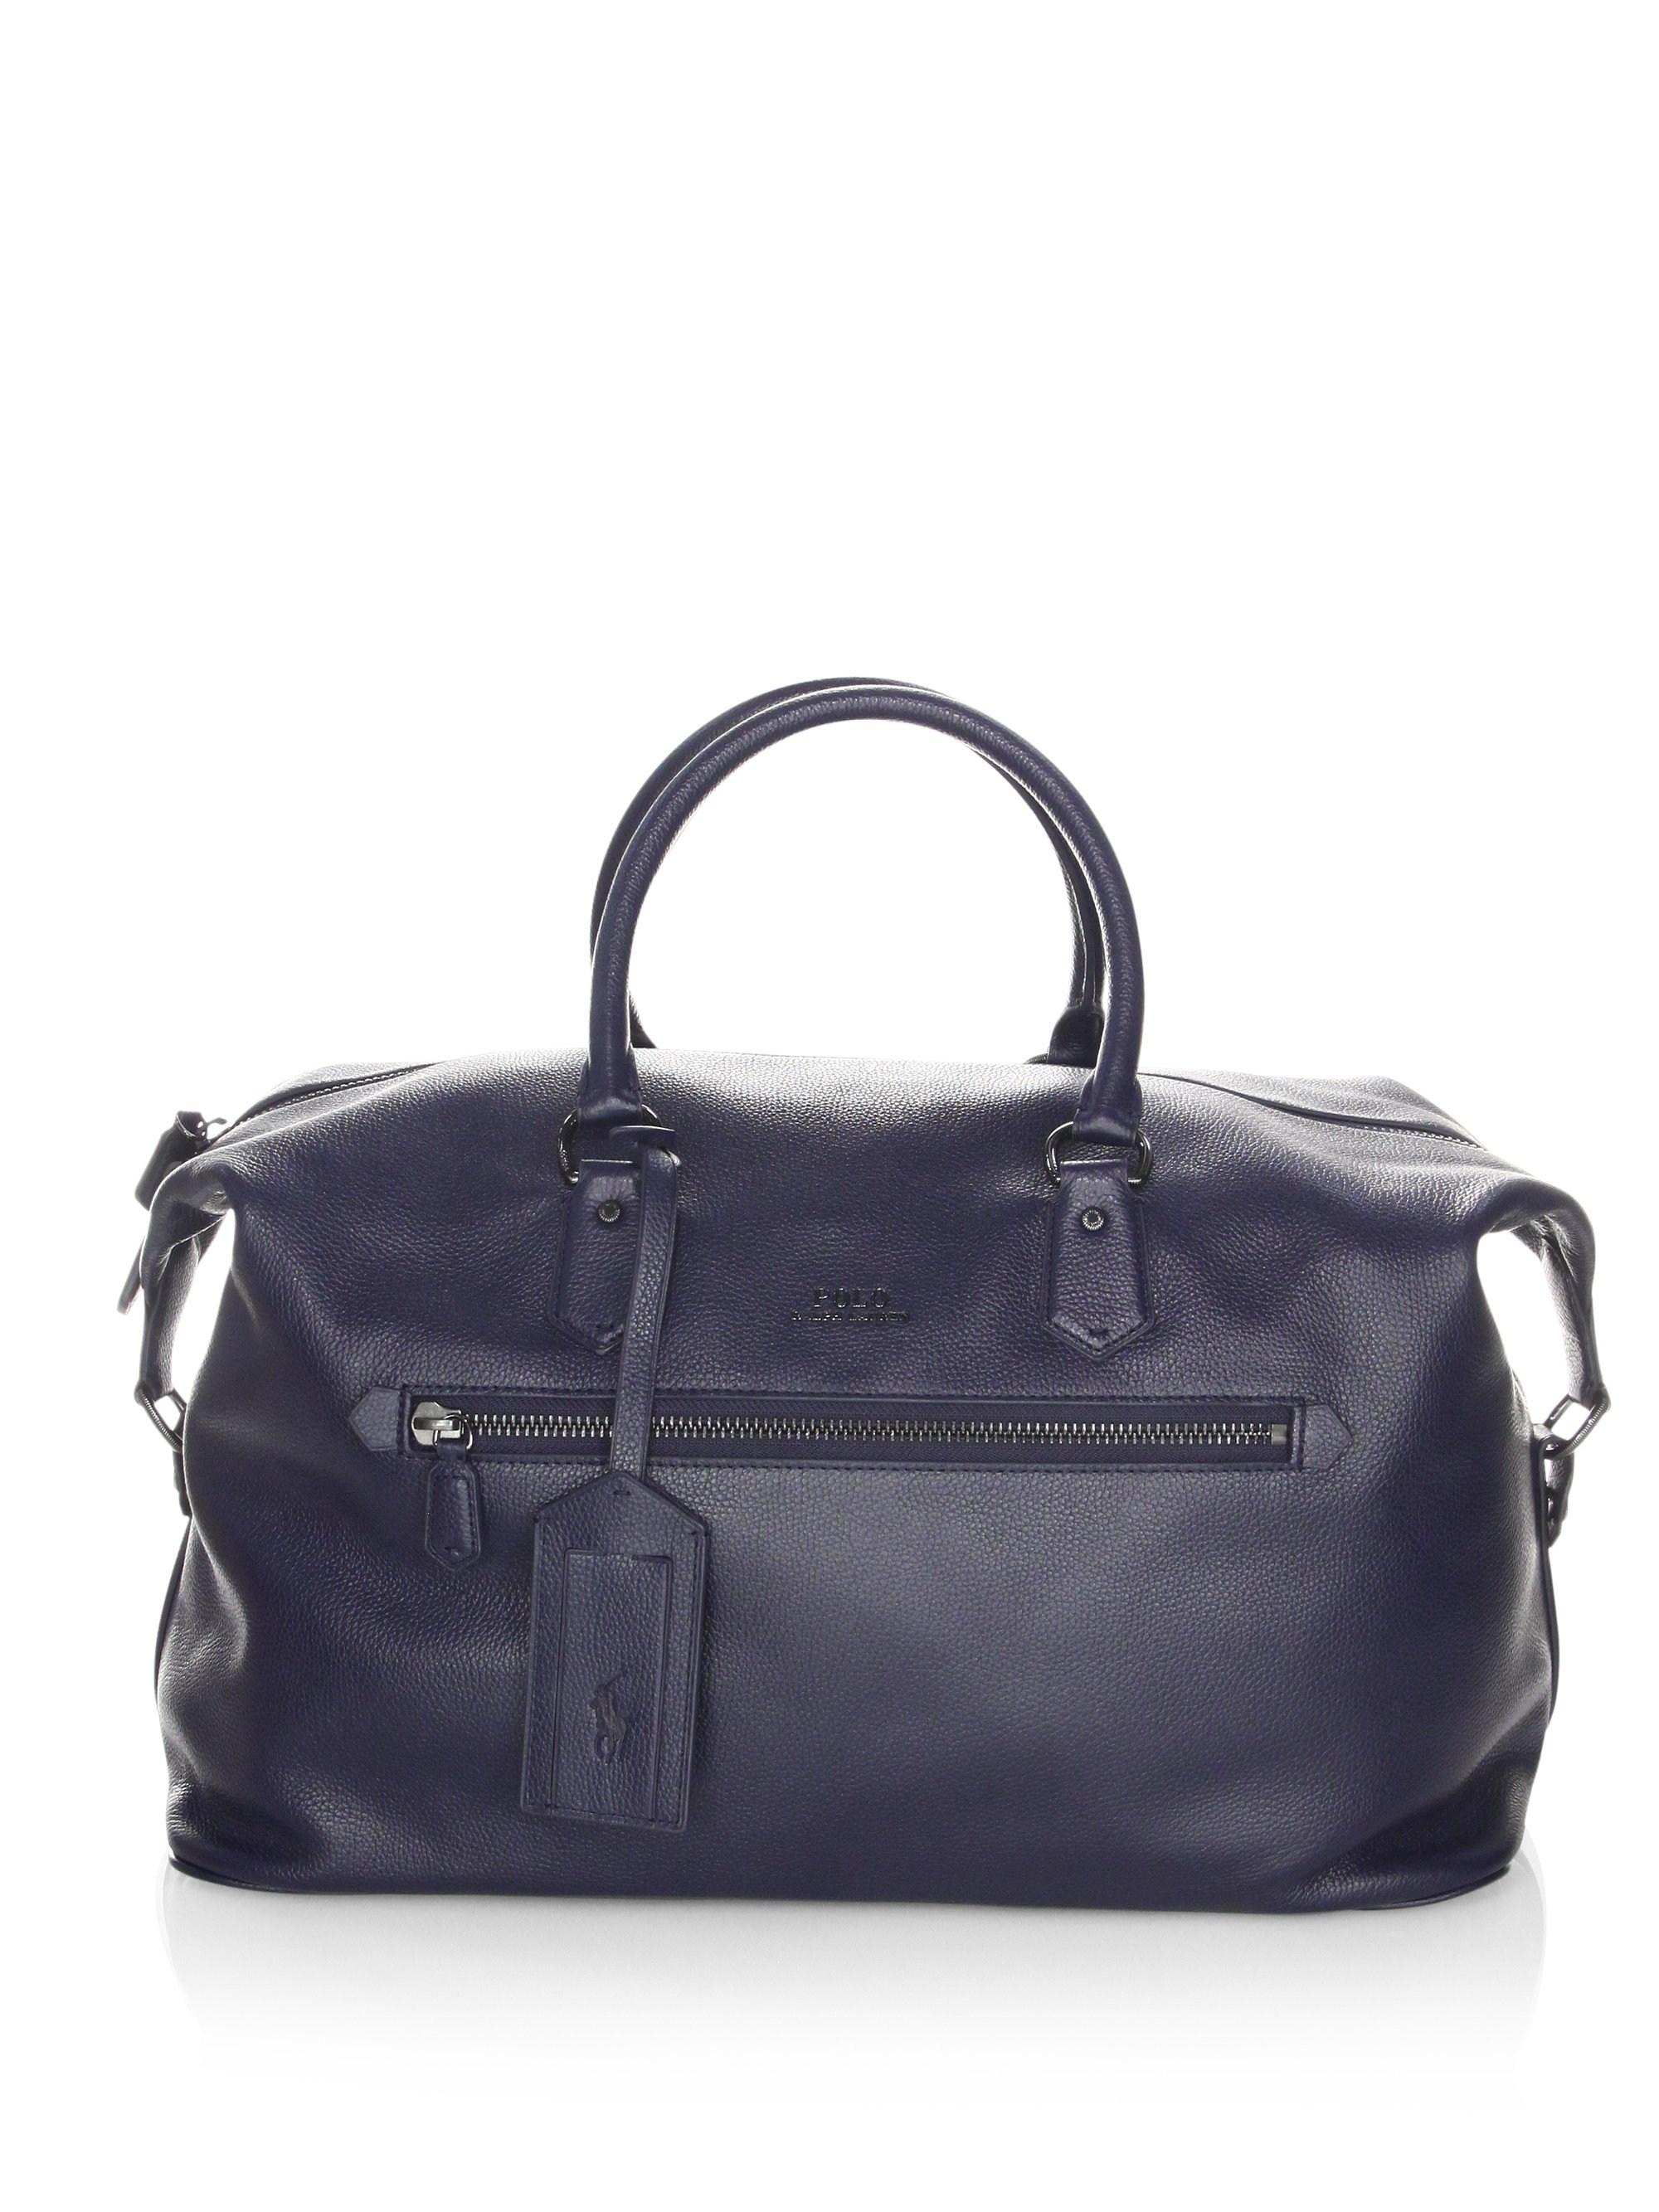 Lyst - Polo Ralph Lauren Pebbled Leather Duffle Bag in Blue for Men 3461eb4e8866e